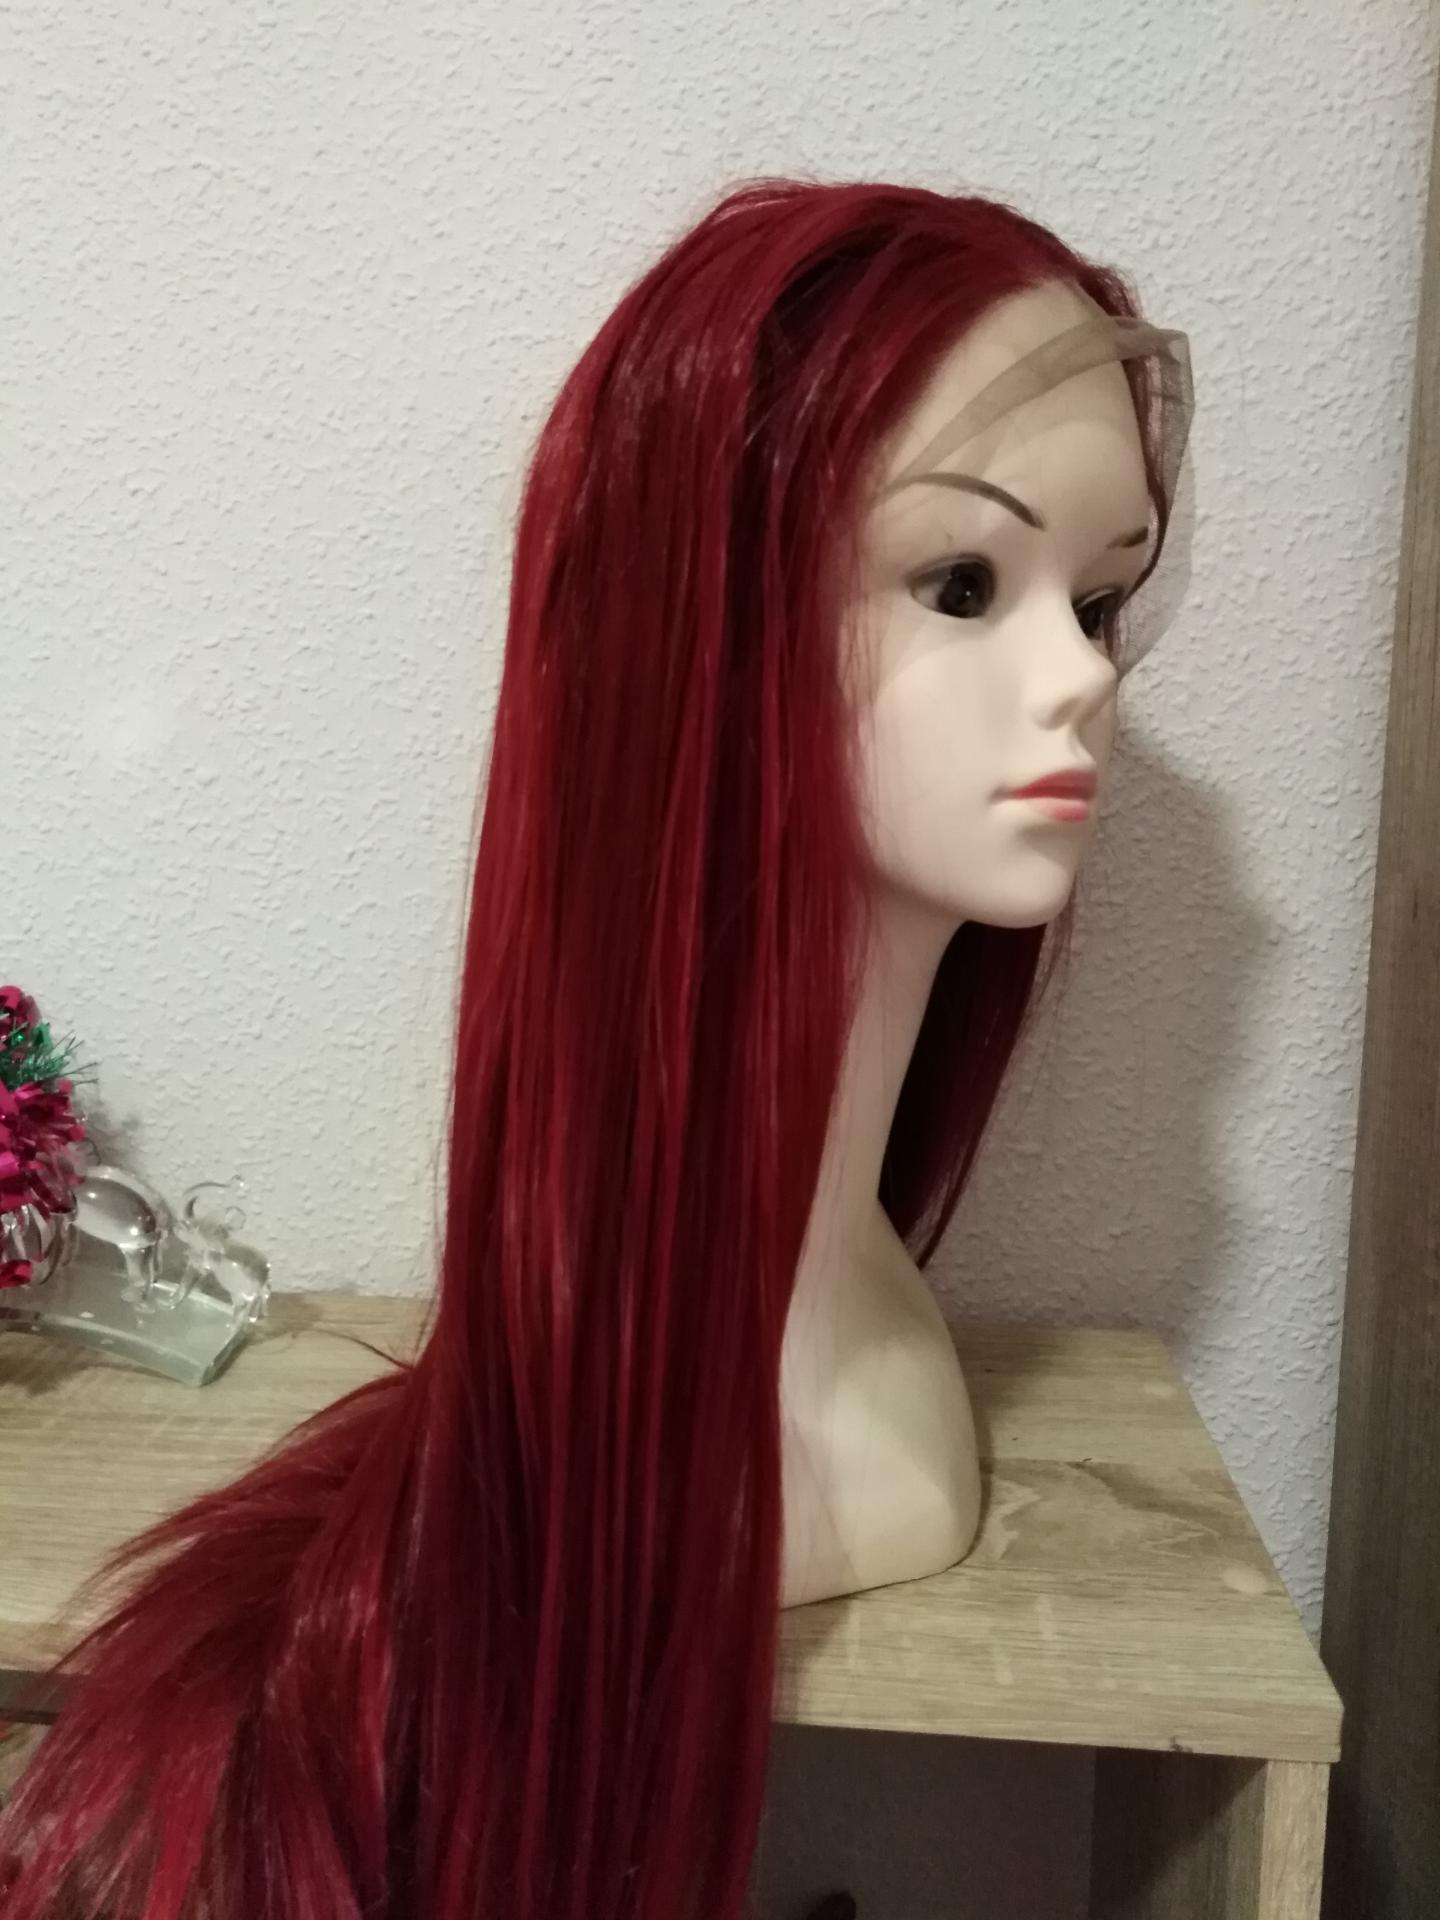 Peluca lace front, rojo oscuro